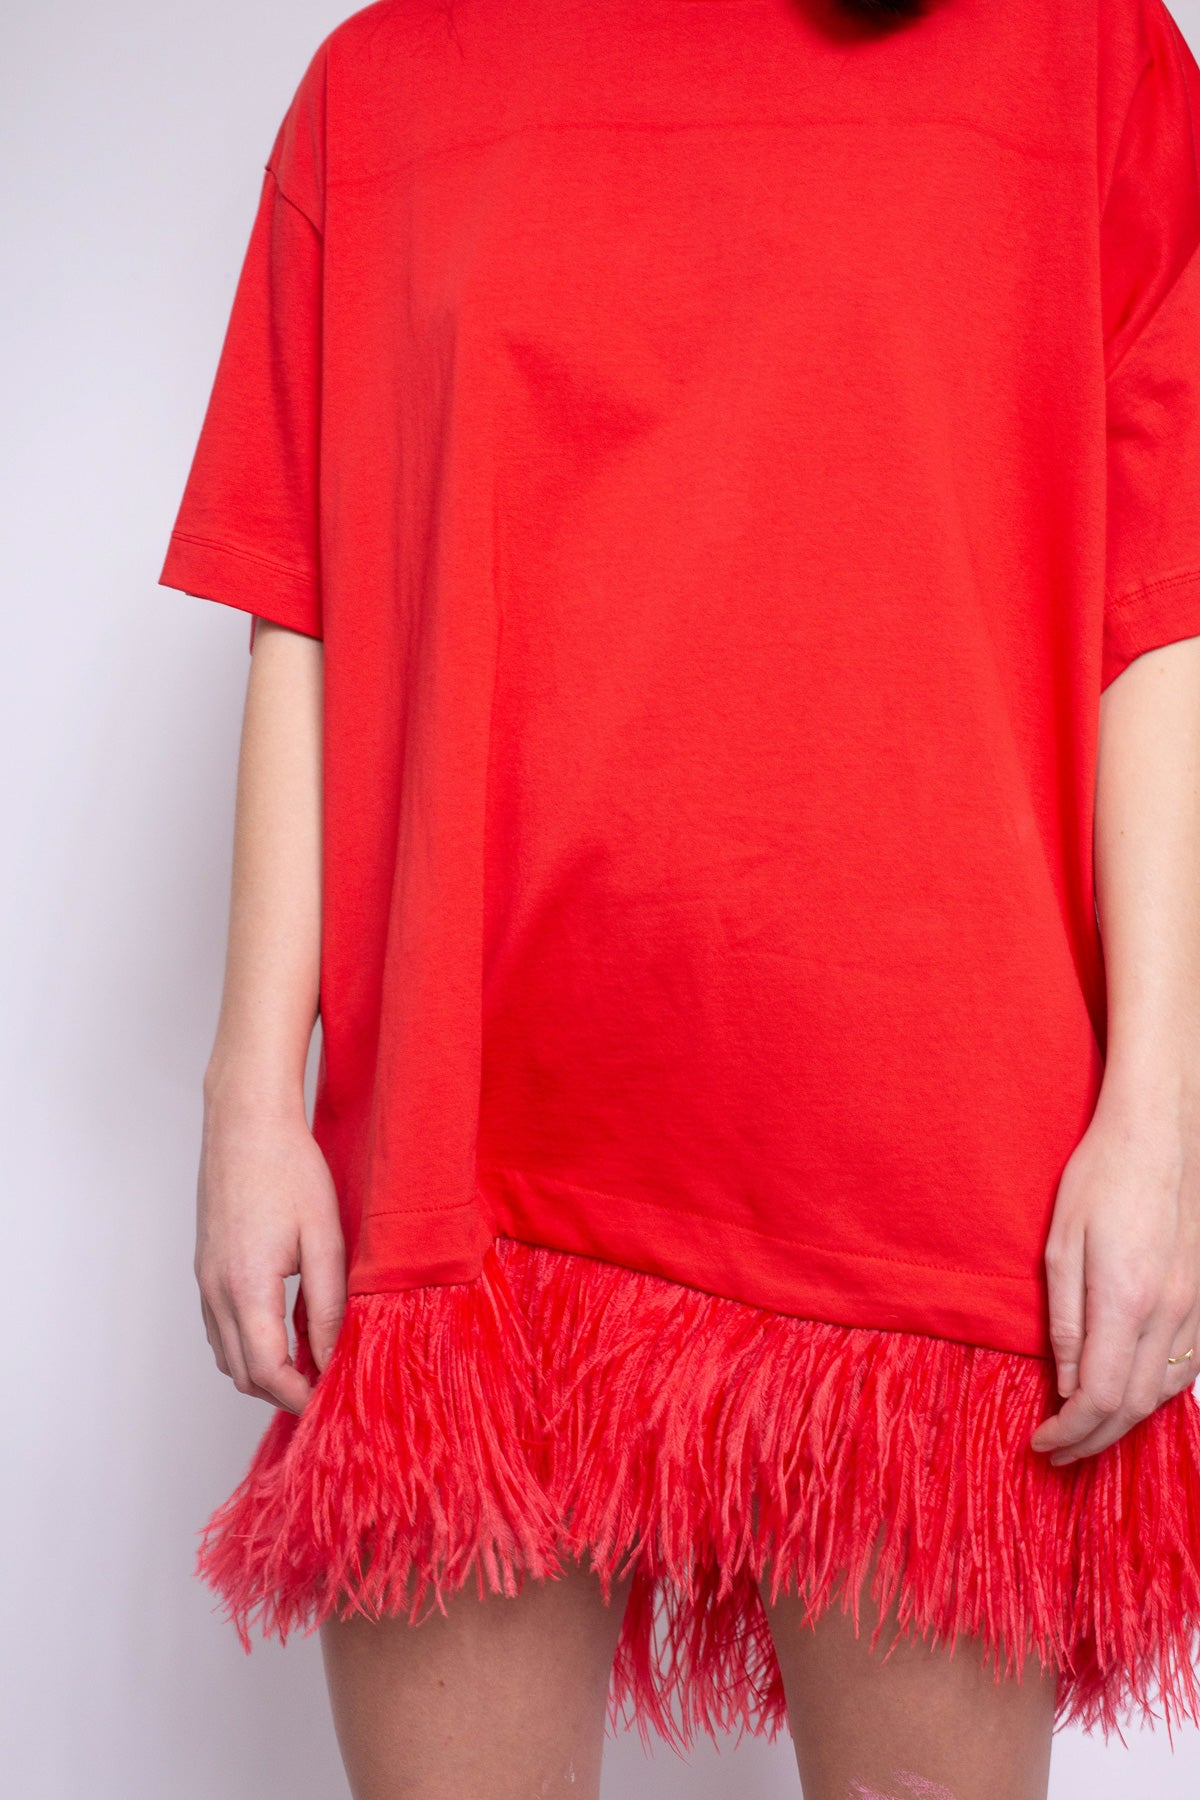 FEATHER HEM TOP IN RED - marques-almeida-dev